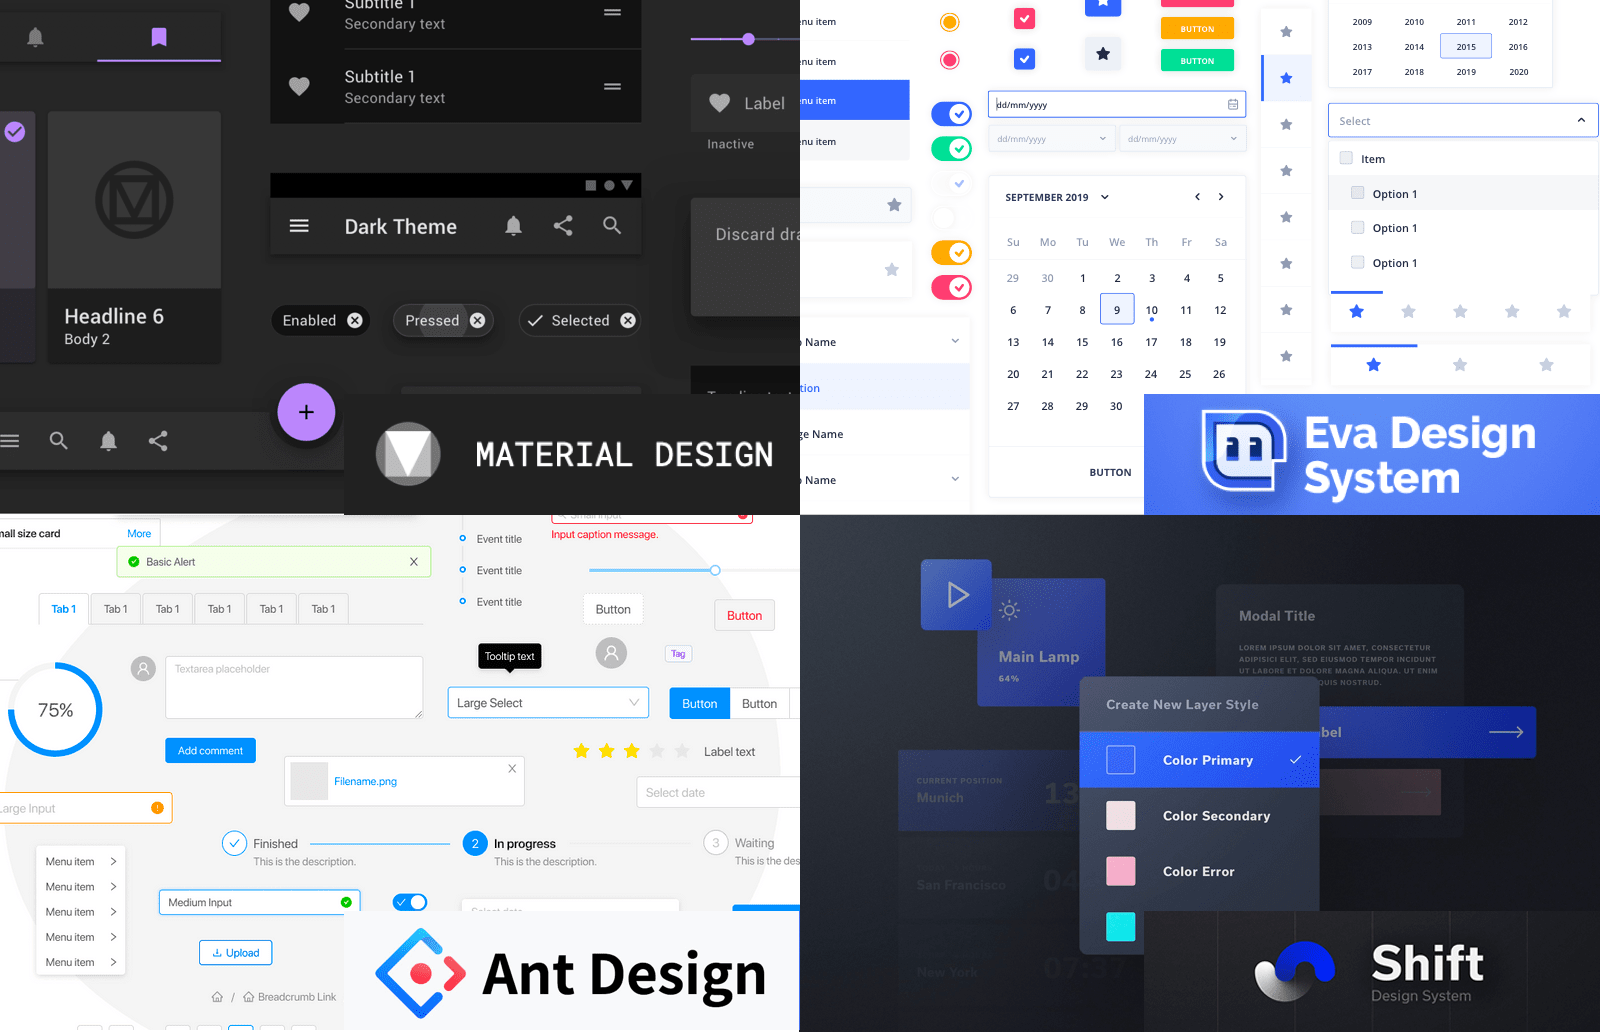 Customizable Design Systems in UX/UI